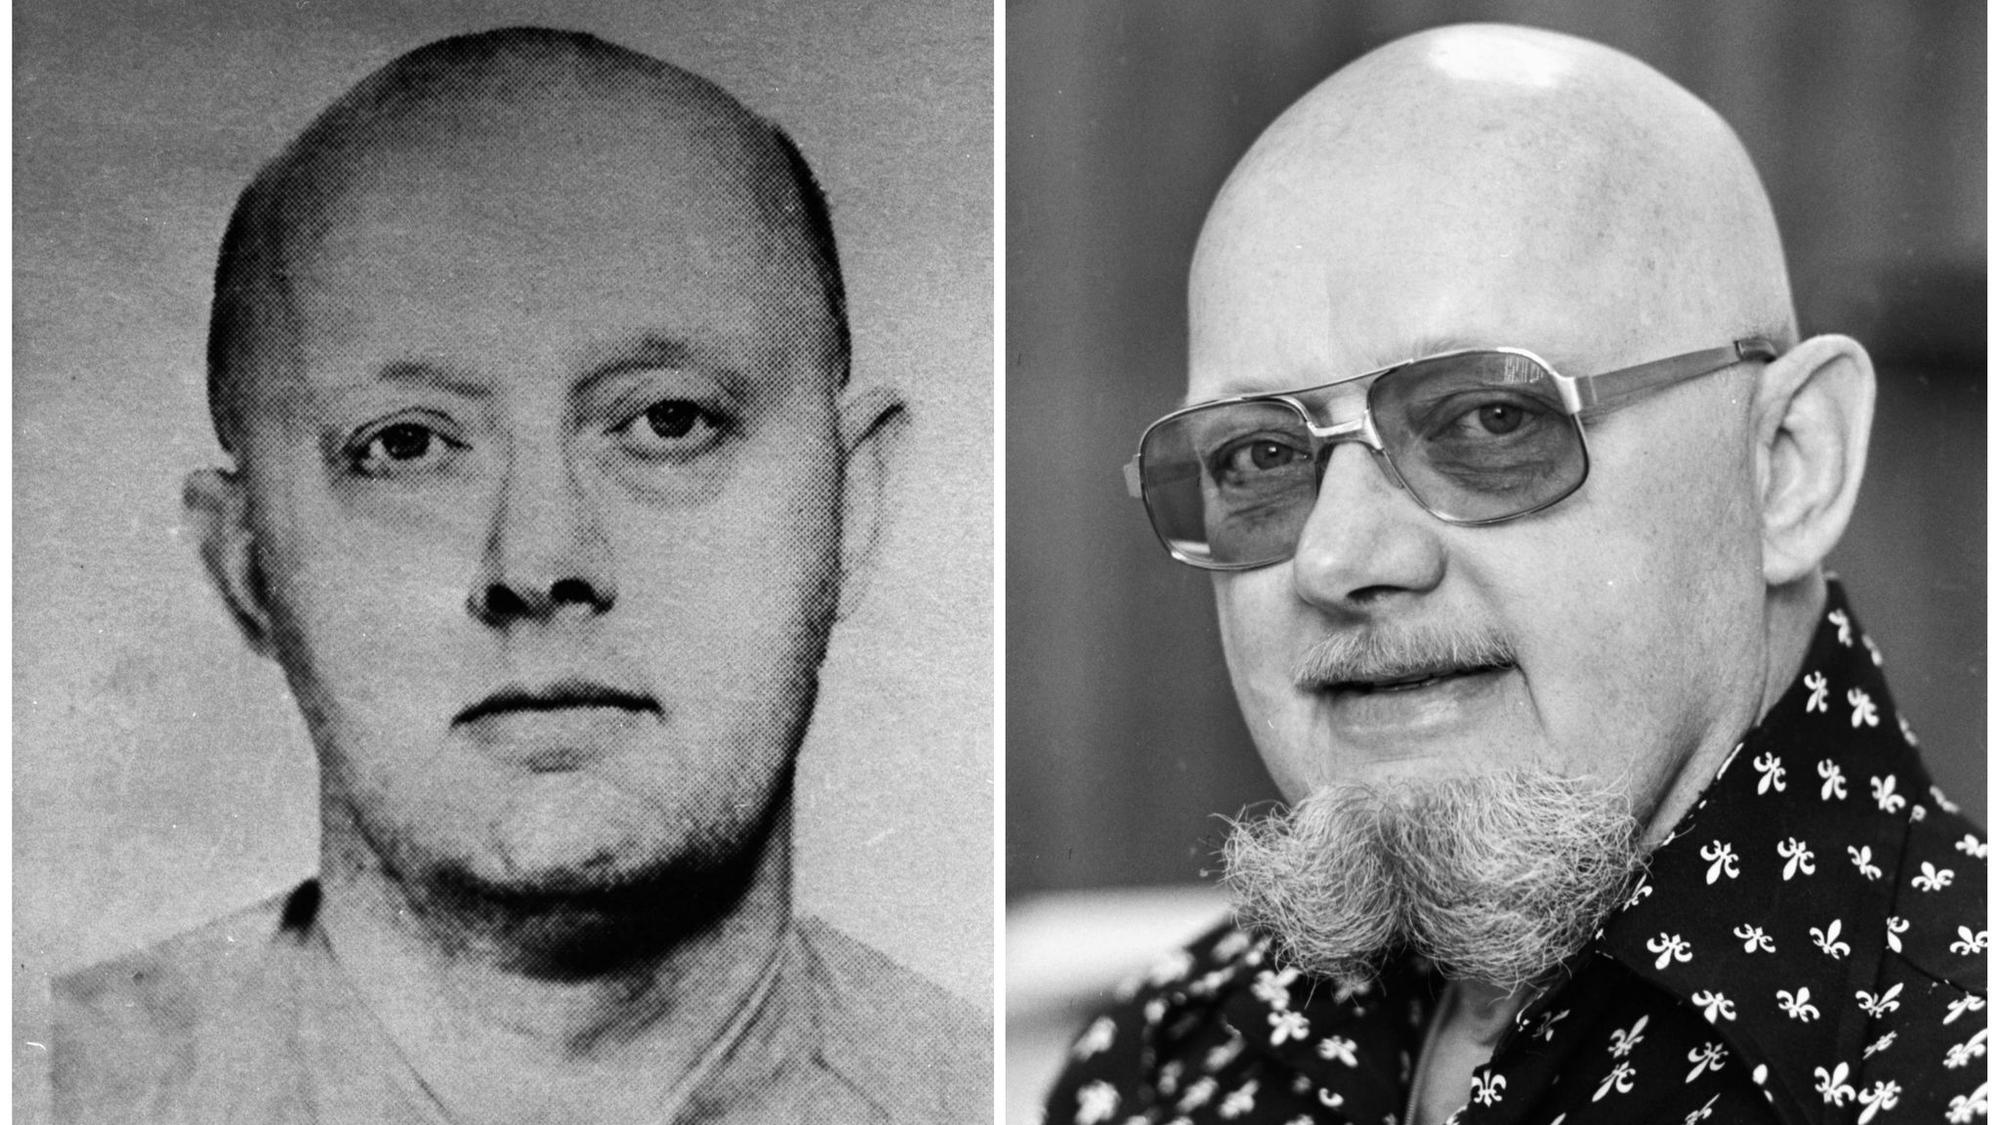 Benjamin Hoskins Paddock, Stephen Paddock's father, is shown in an FBI wanted poster from the 1960s, left, and in an image from 1977, when he was on the lam in Oregon after escaping from a Texas federal prison and adopting the alias Bruce Ericksen.